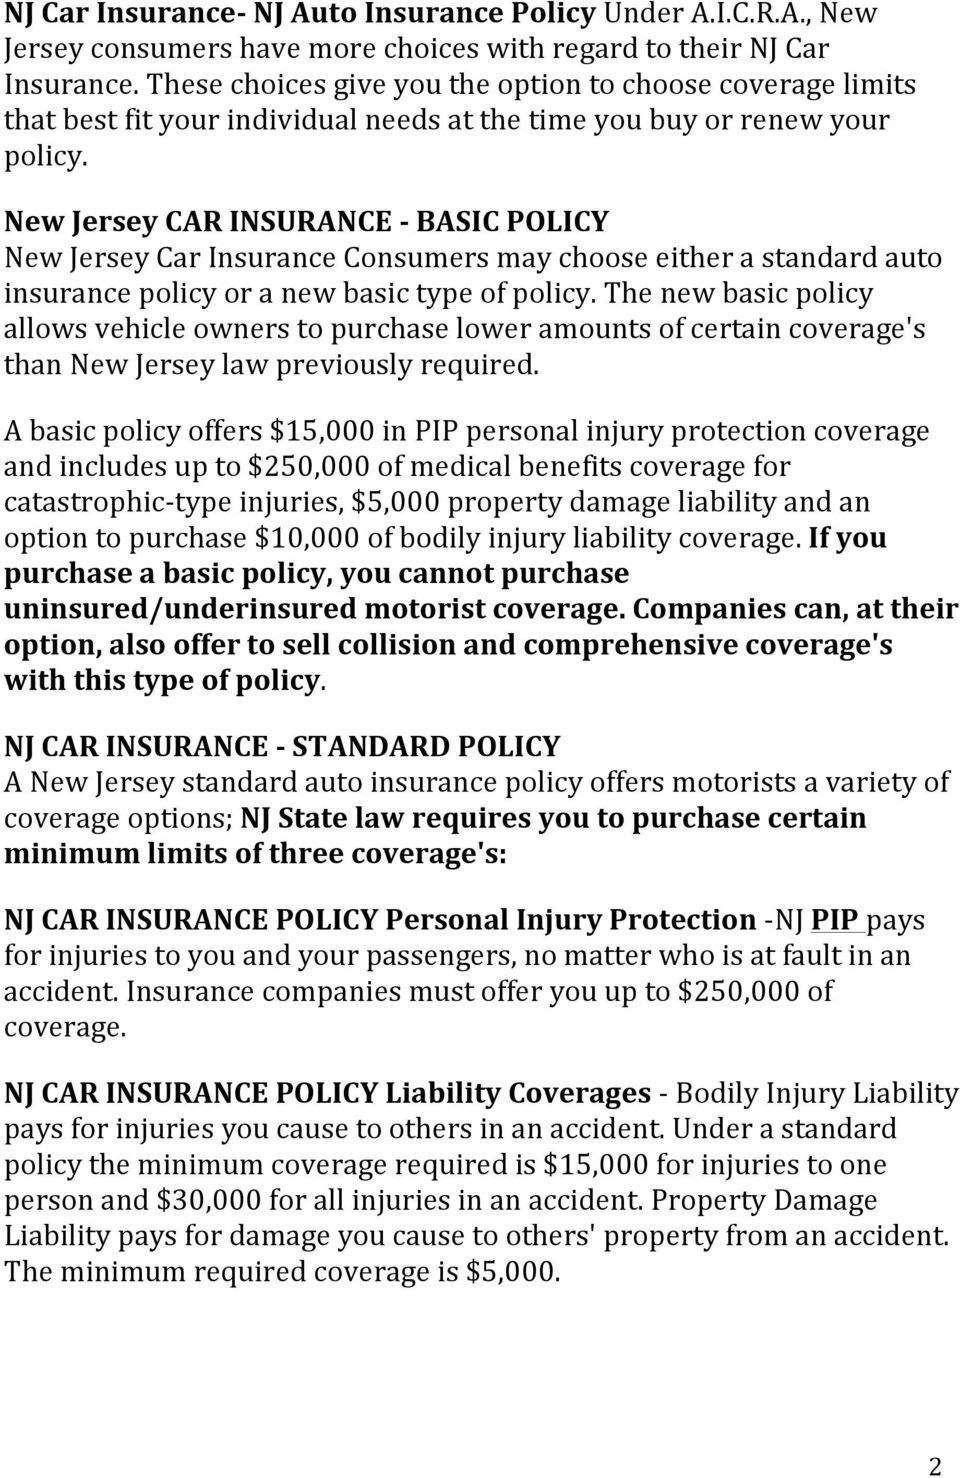 New Jersey CAR INSURANCE - BASIC POLICY New Jersey Car Insurance Consumers may choose either a standard auto insurance policy or a new basic type of policy.